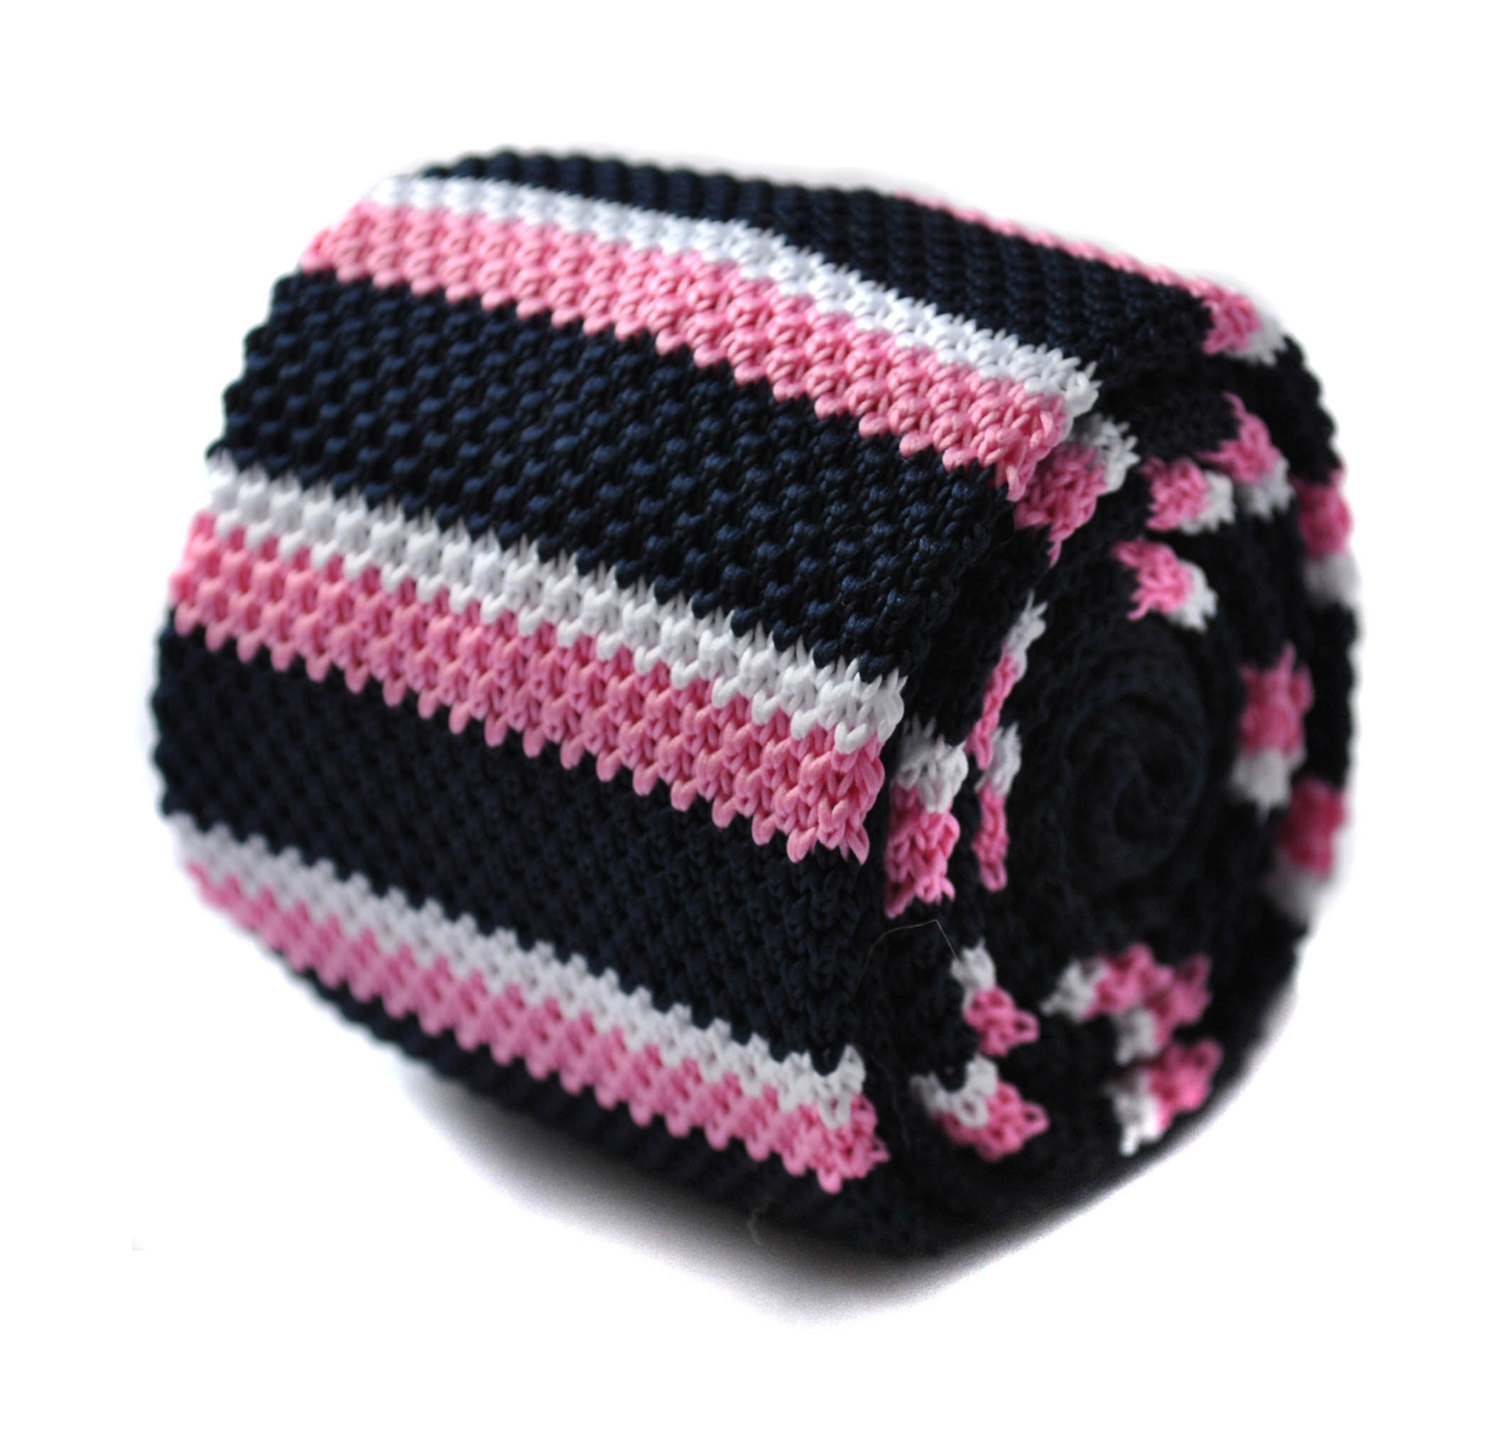 Pink, black and white striped knitted skinny tie by Frederick Thomas FT287